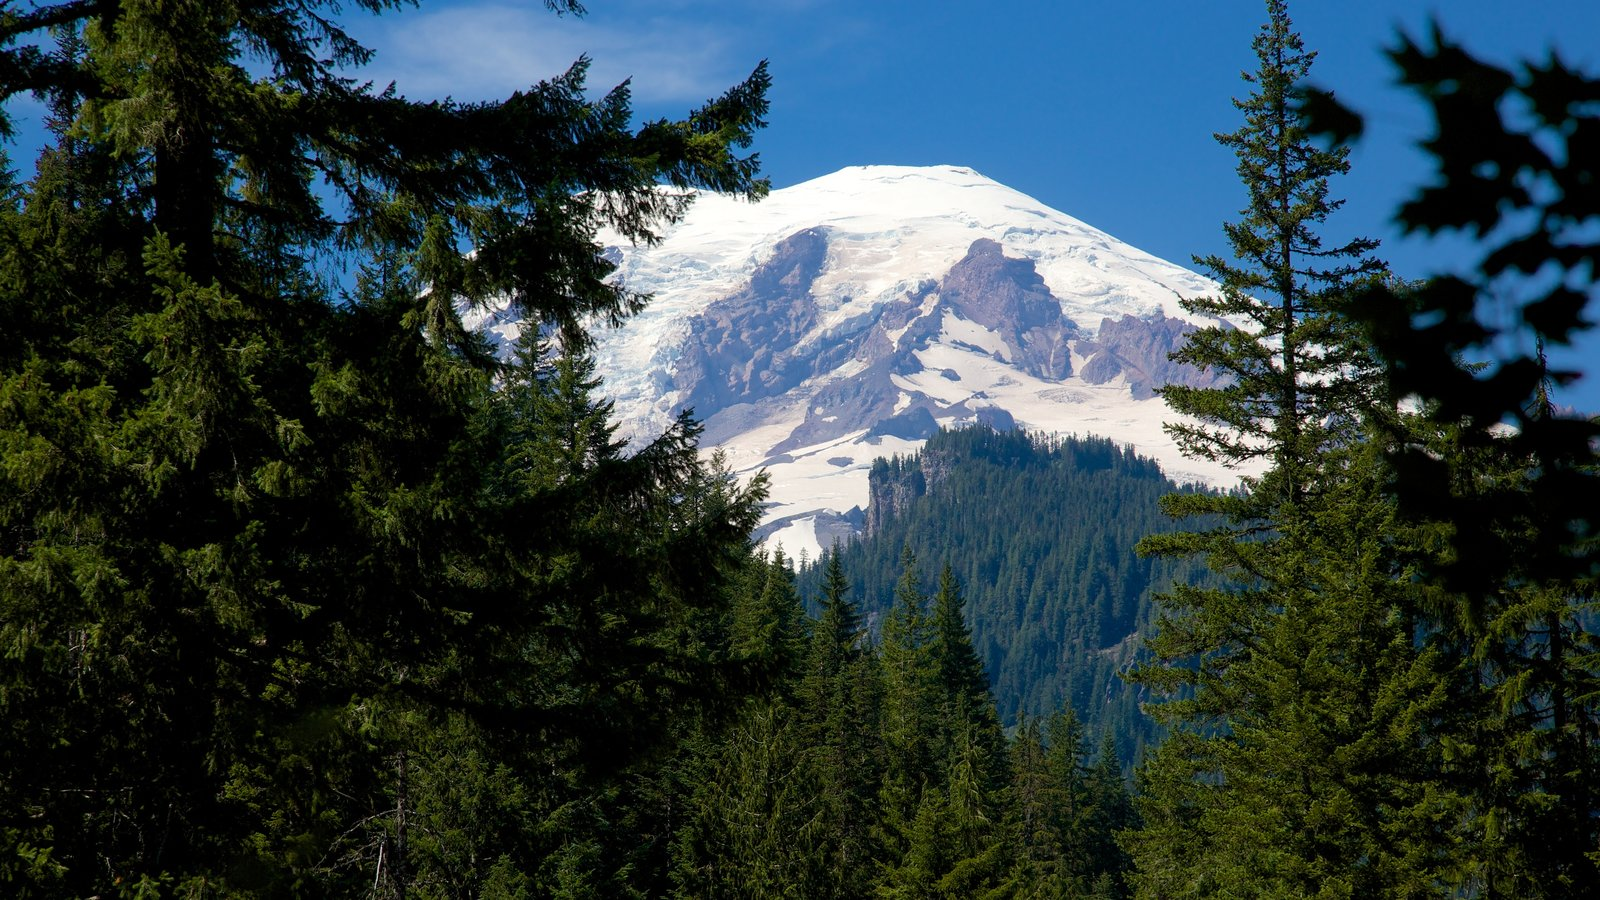 Mount Rainier National Park featuring tranquil scenes, forest scenes and snow